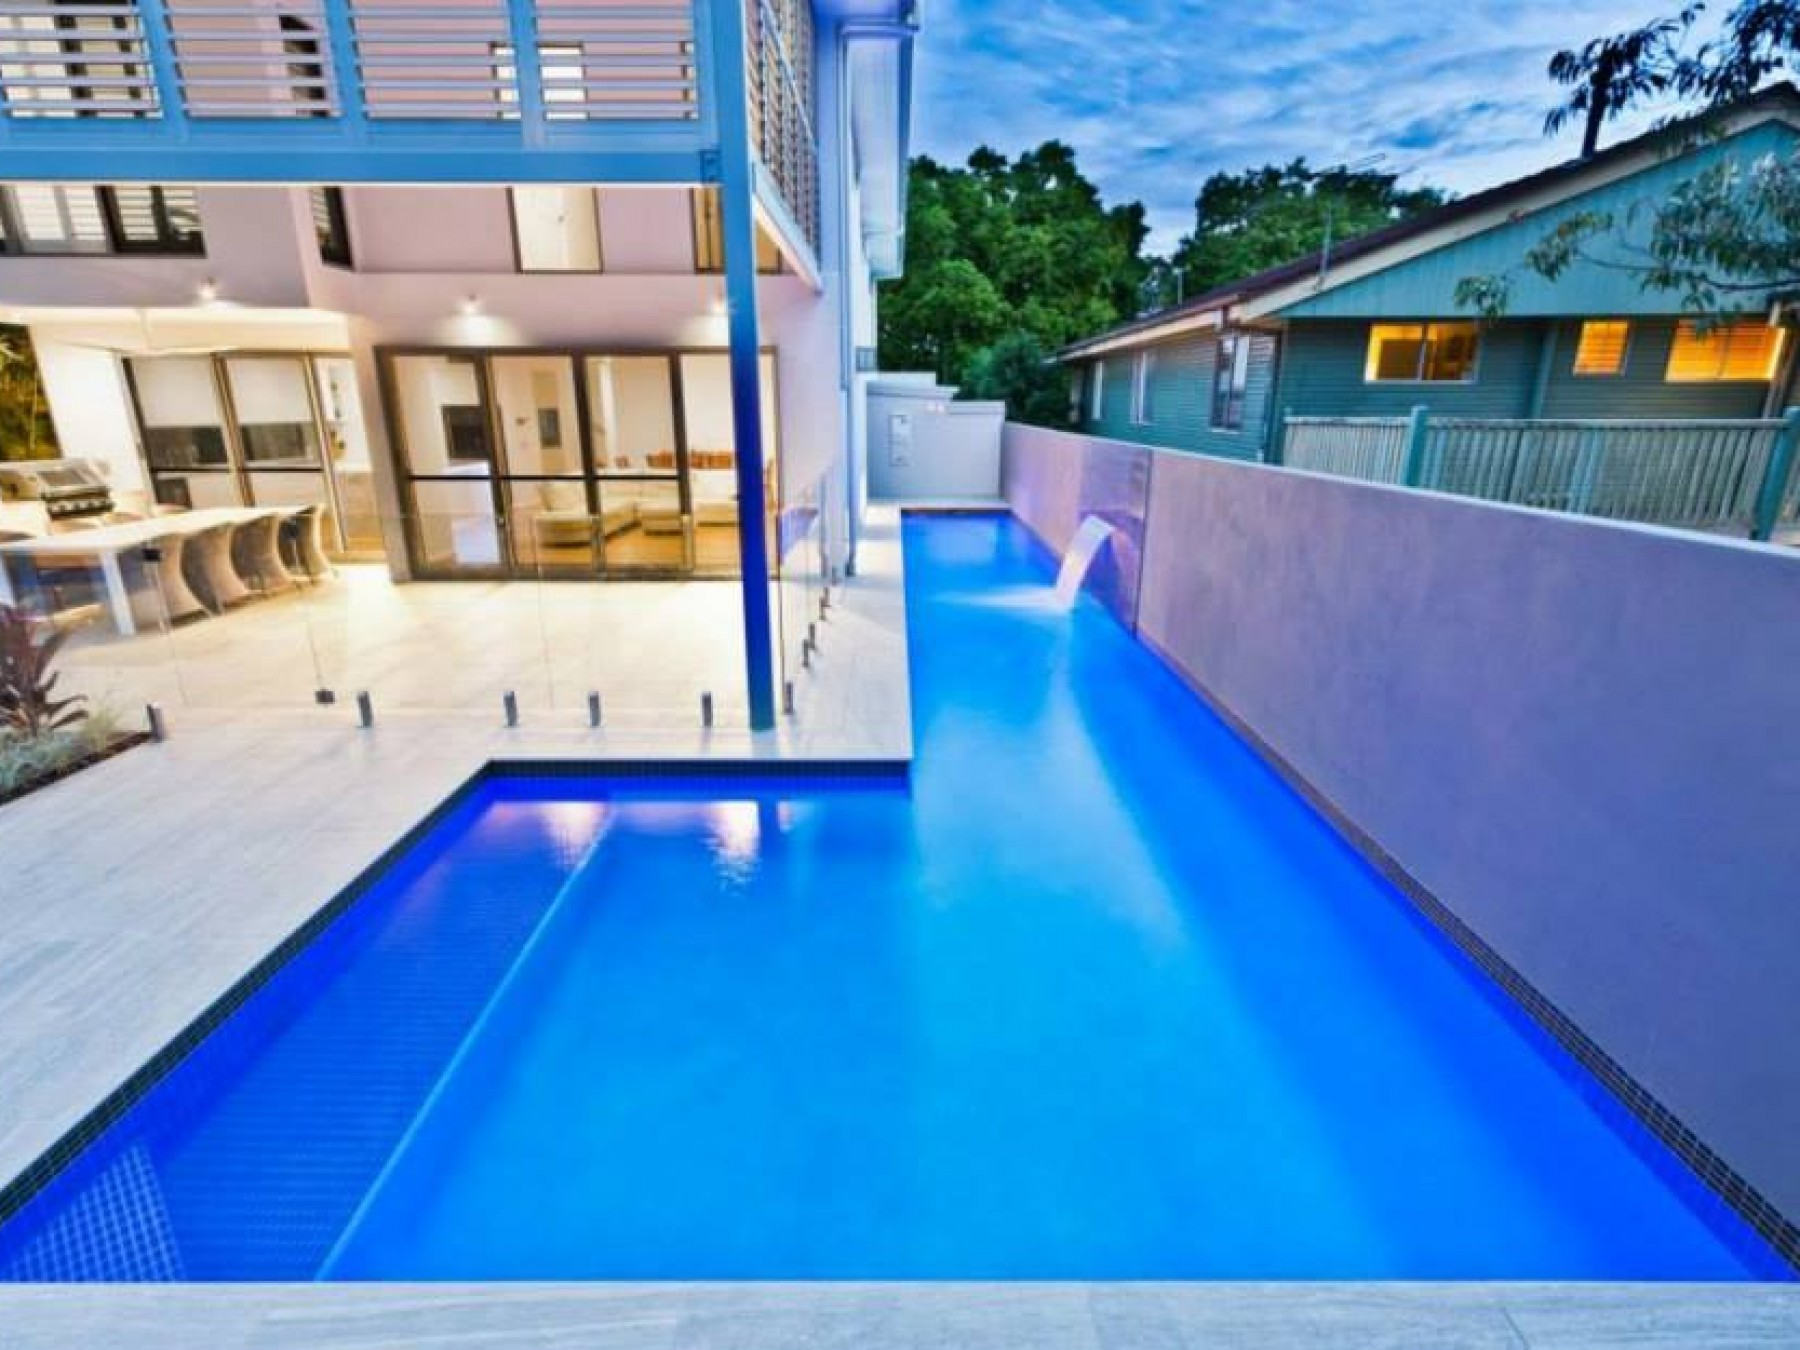 Selling or Leasing a pool in Kelvin Grove